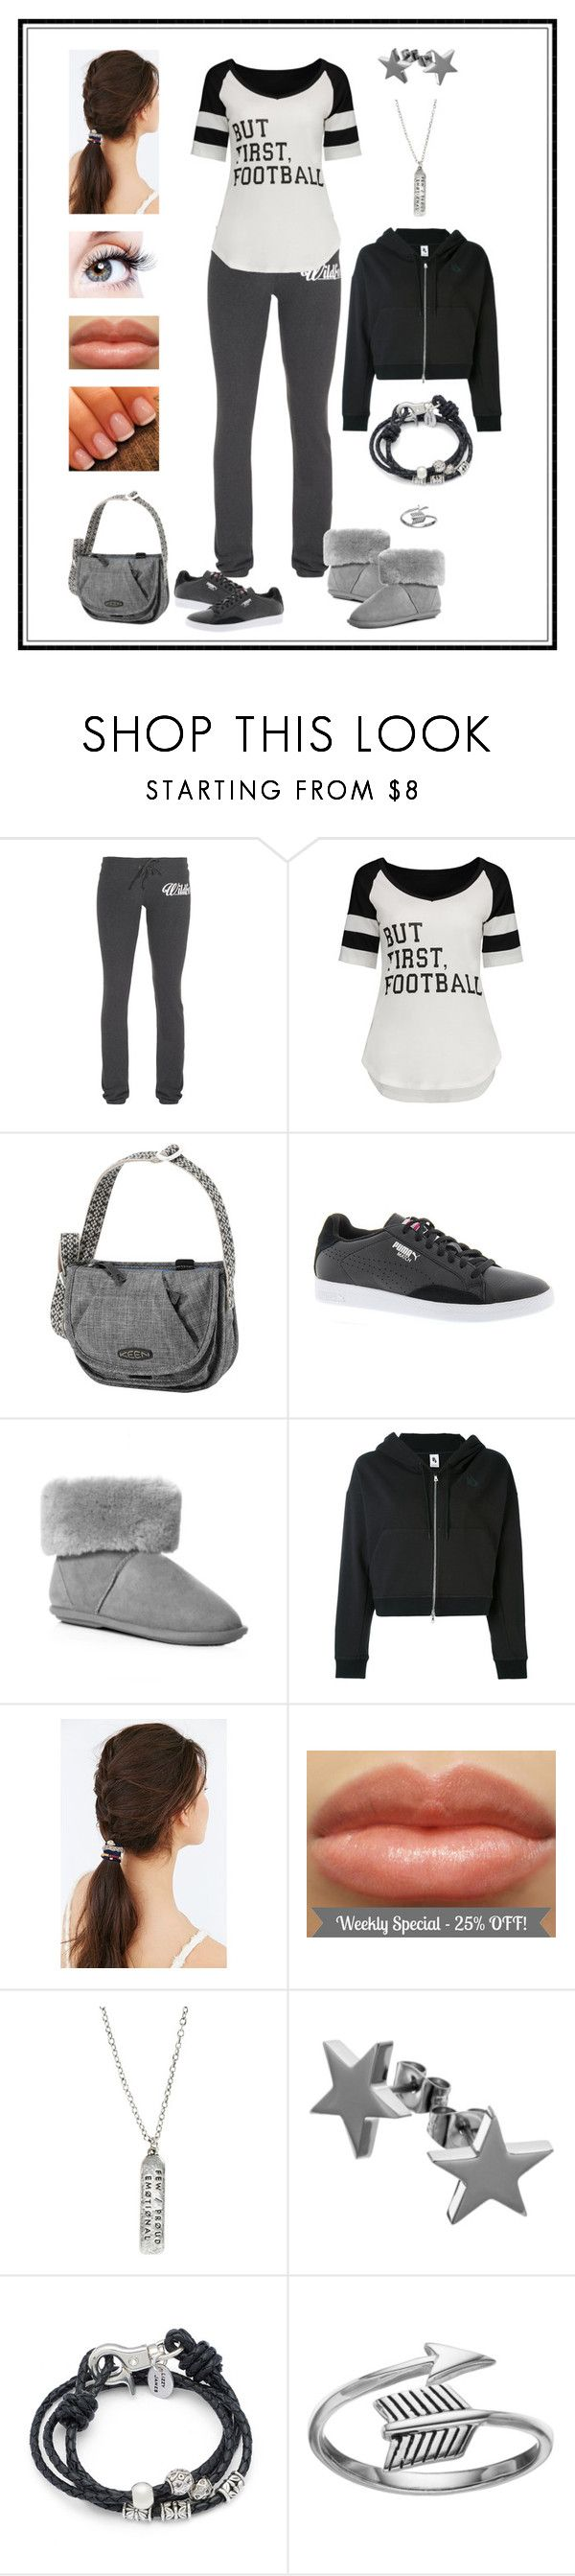 """Untitled # 786"" by binasa87 ❤ liked on Polyvore featuring Wildfox, Keen Footwear, Puma, Just Sheepskin, NIKE, Urban Outfitters, Hot Topic, Lizzy James and Primrose"